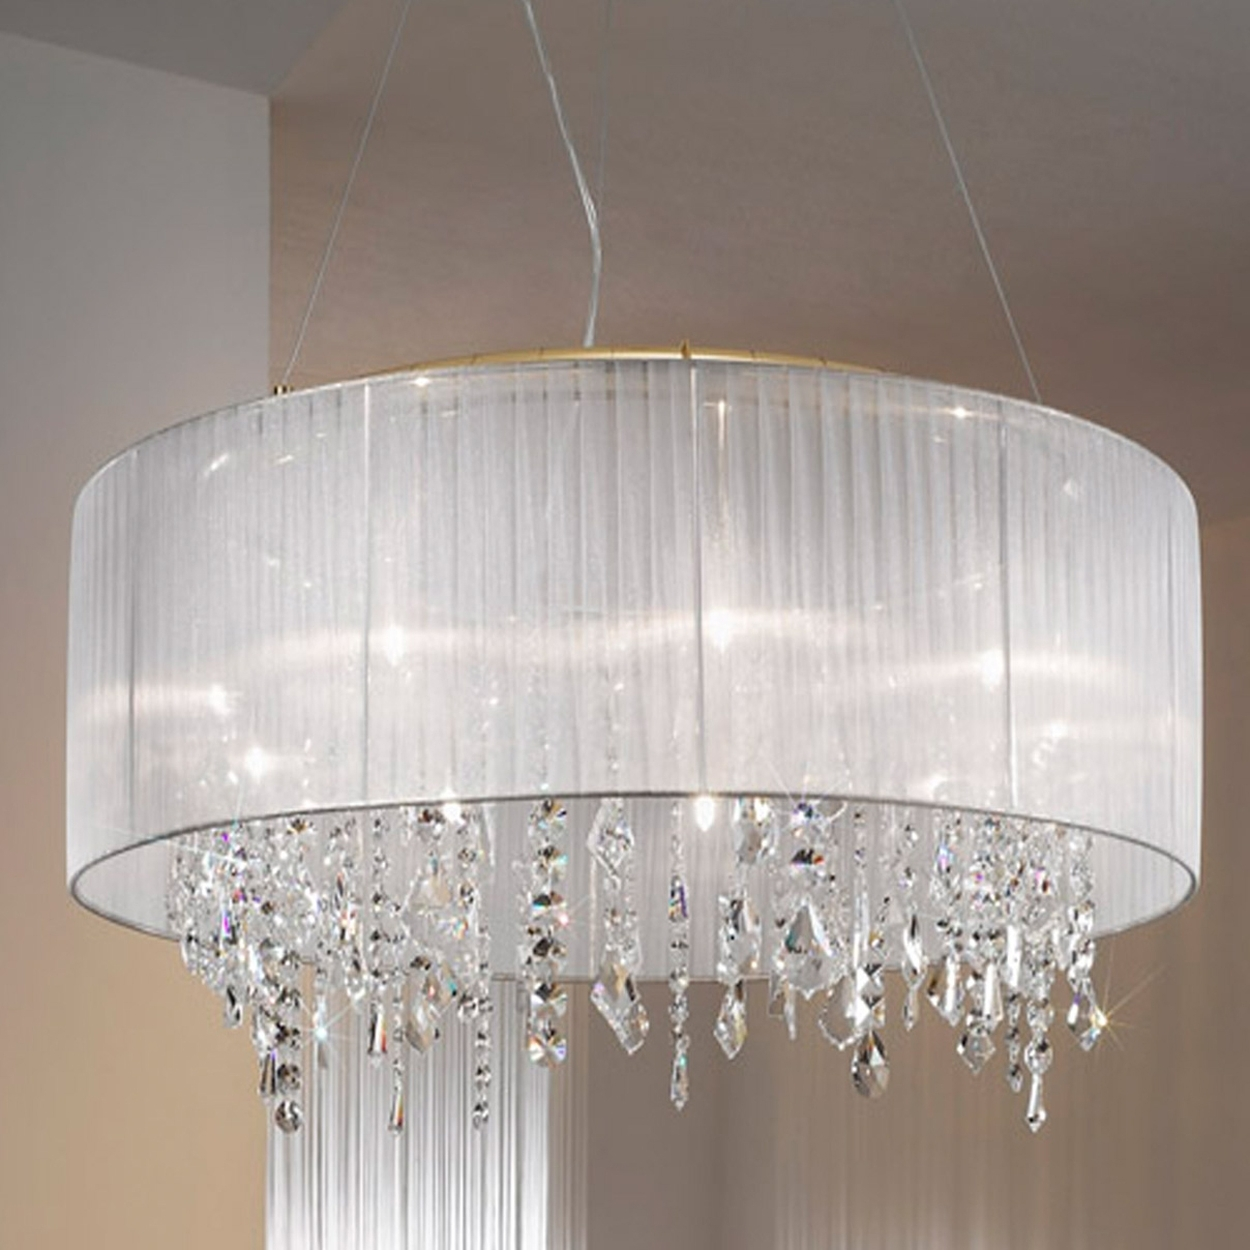 Well Liked Glamorous Barrel Lamp Shade Chandelier Drum Chandeliers Shades Of With Lampshade Chandeliers (View 6 of 15)